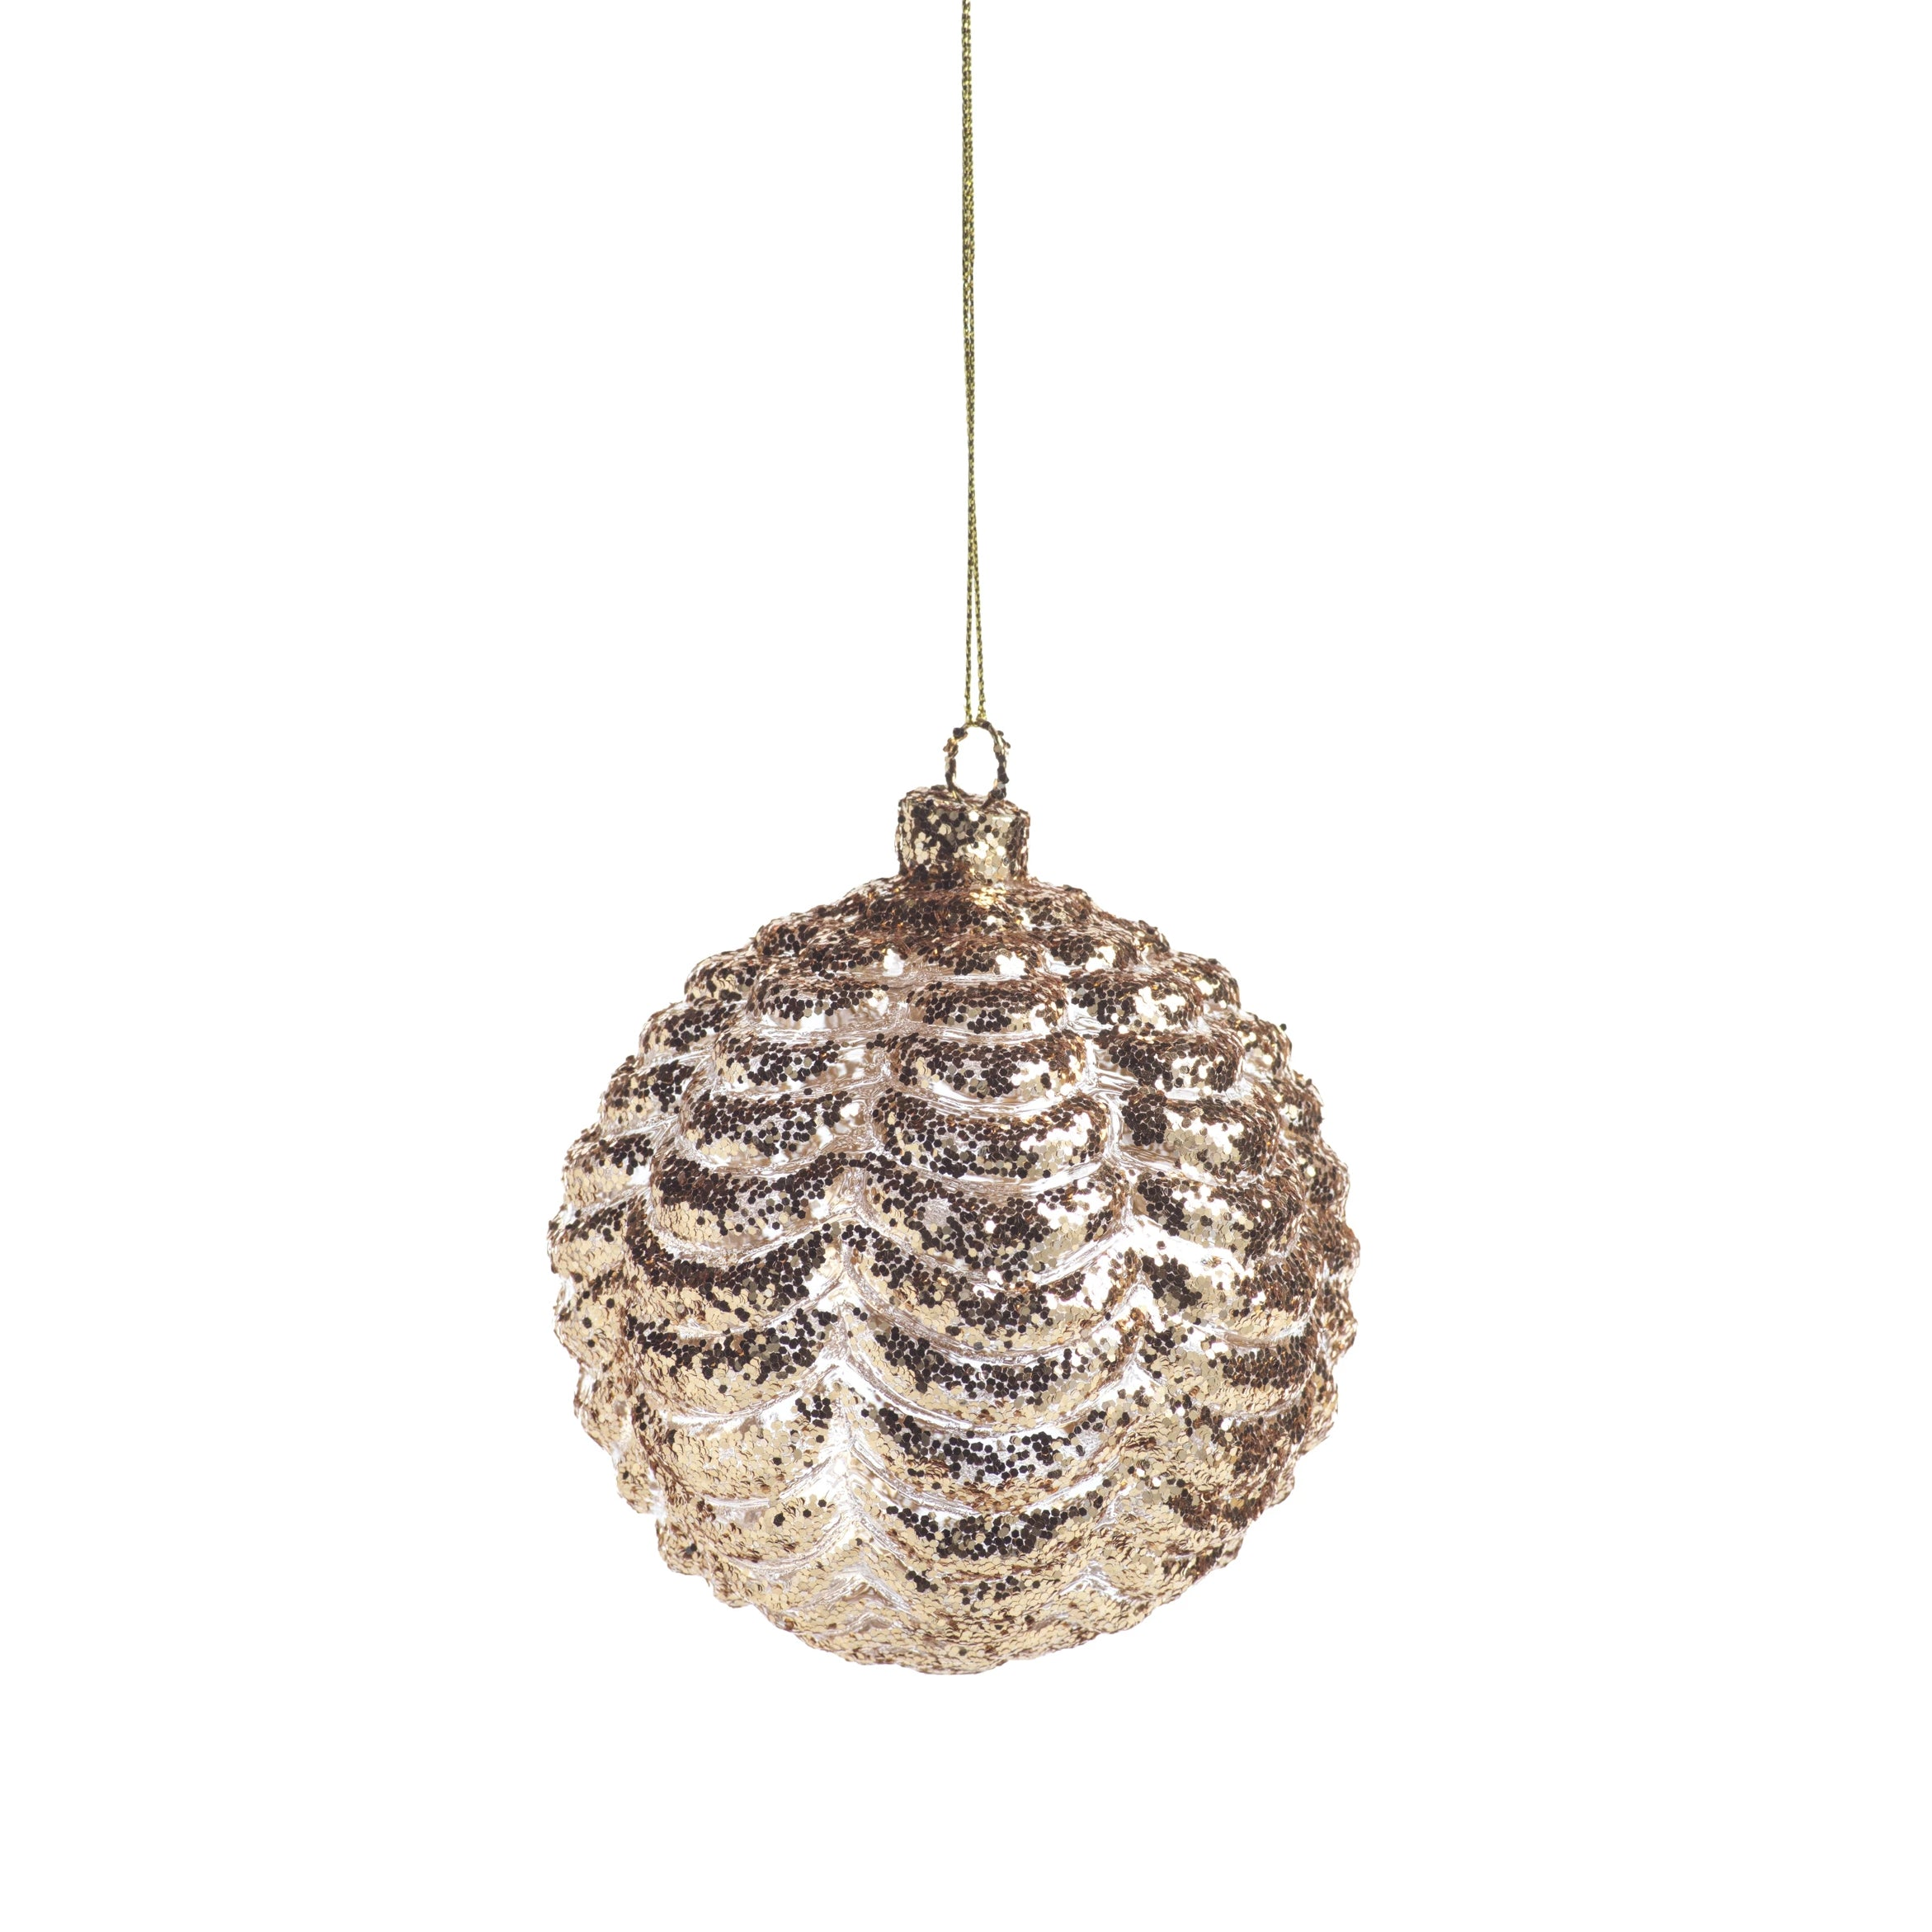 Gold Ripple Ball Ornament - CARLYLE AVENUE